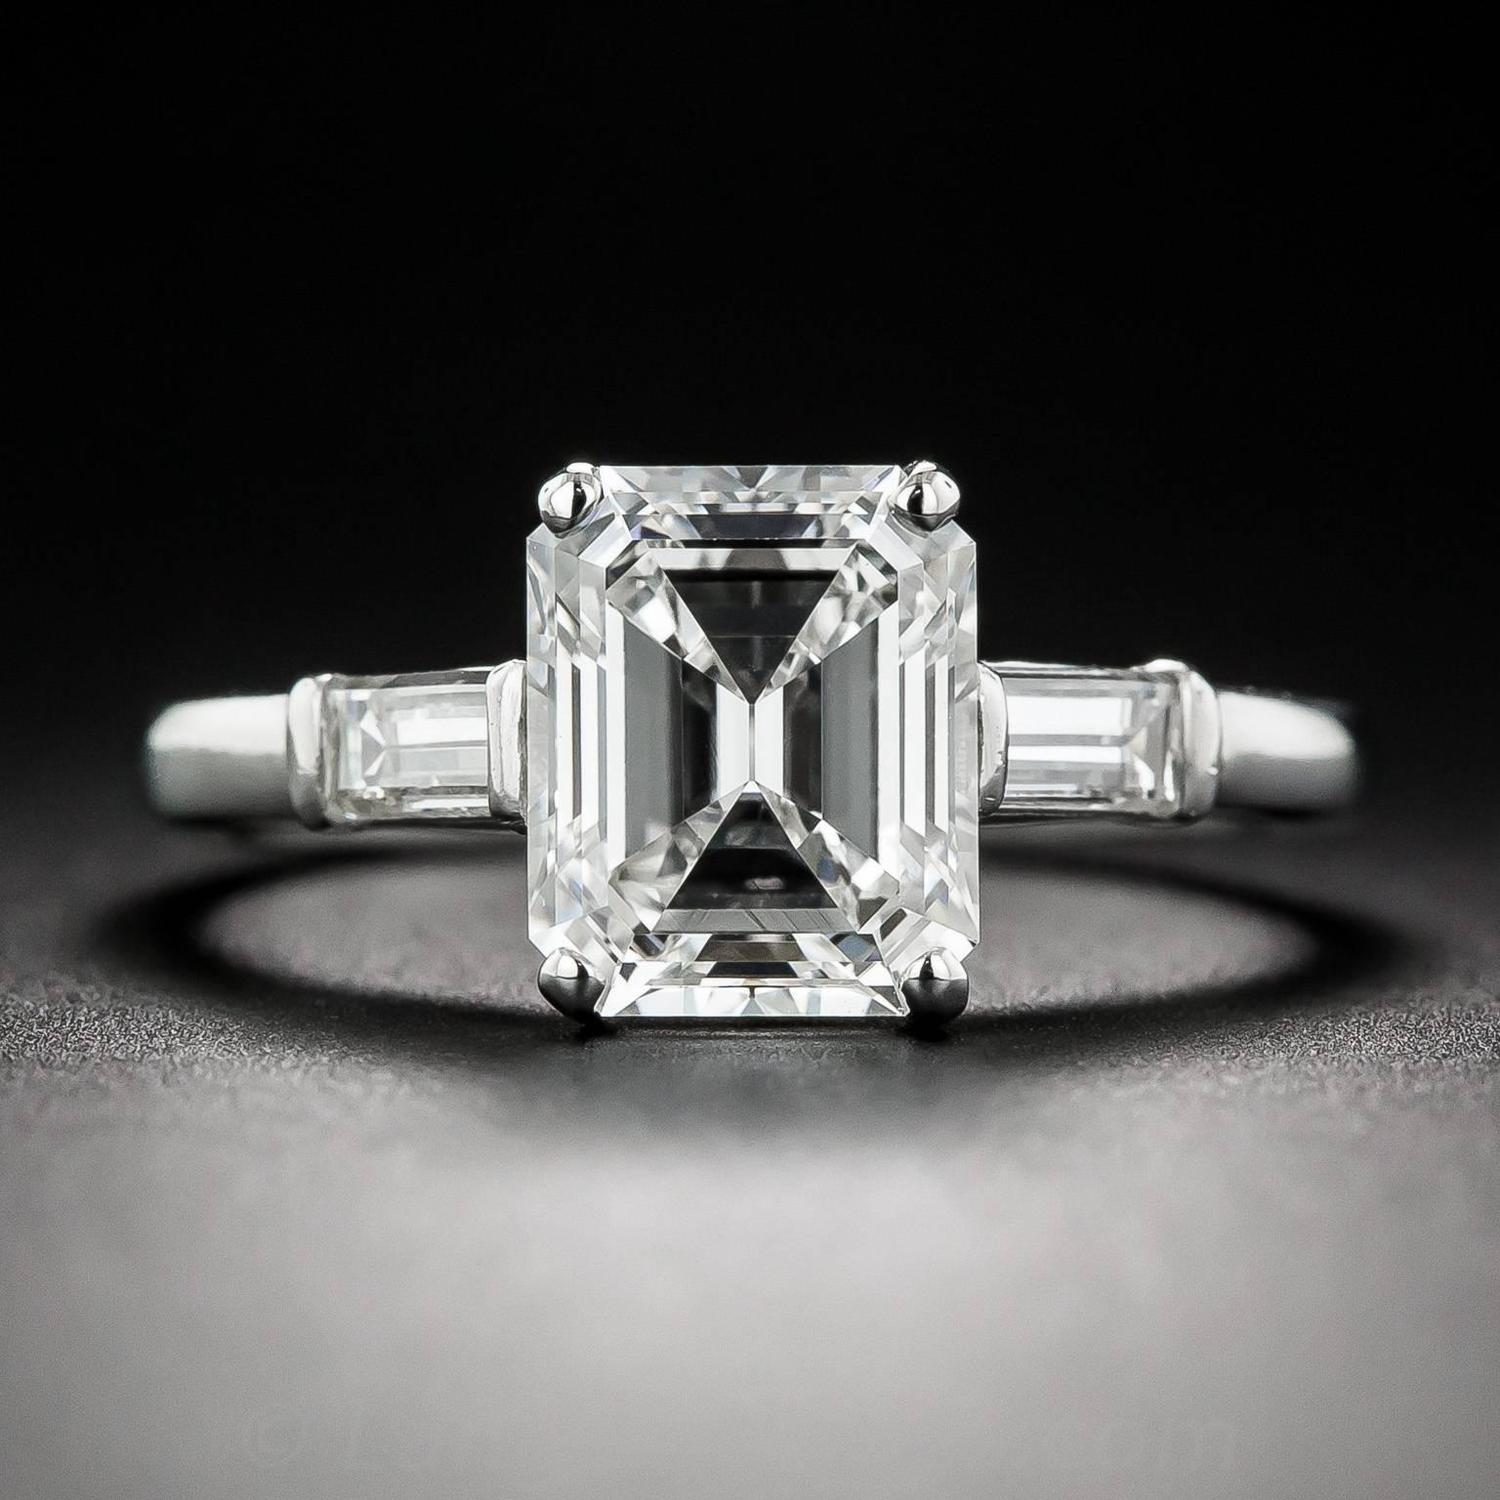 Raymond Yard 2 21 Carat Emerald Cut Diamond Platinum Ring For Sale at 1stdibs